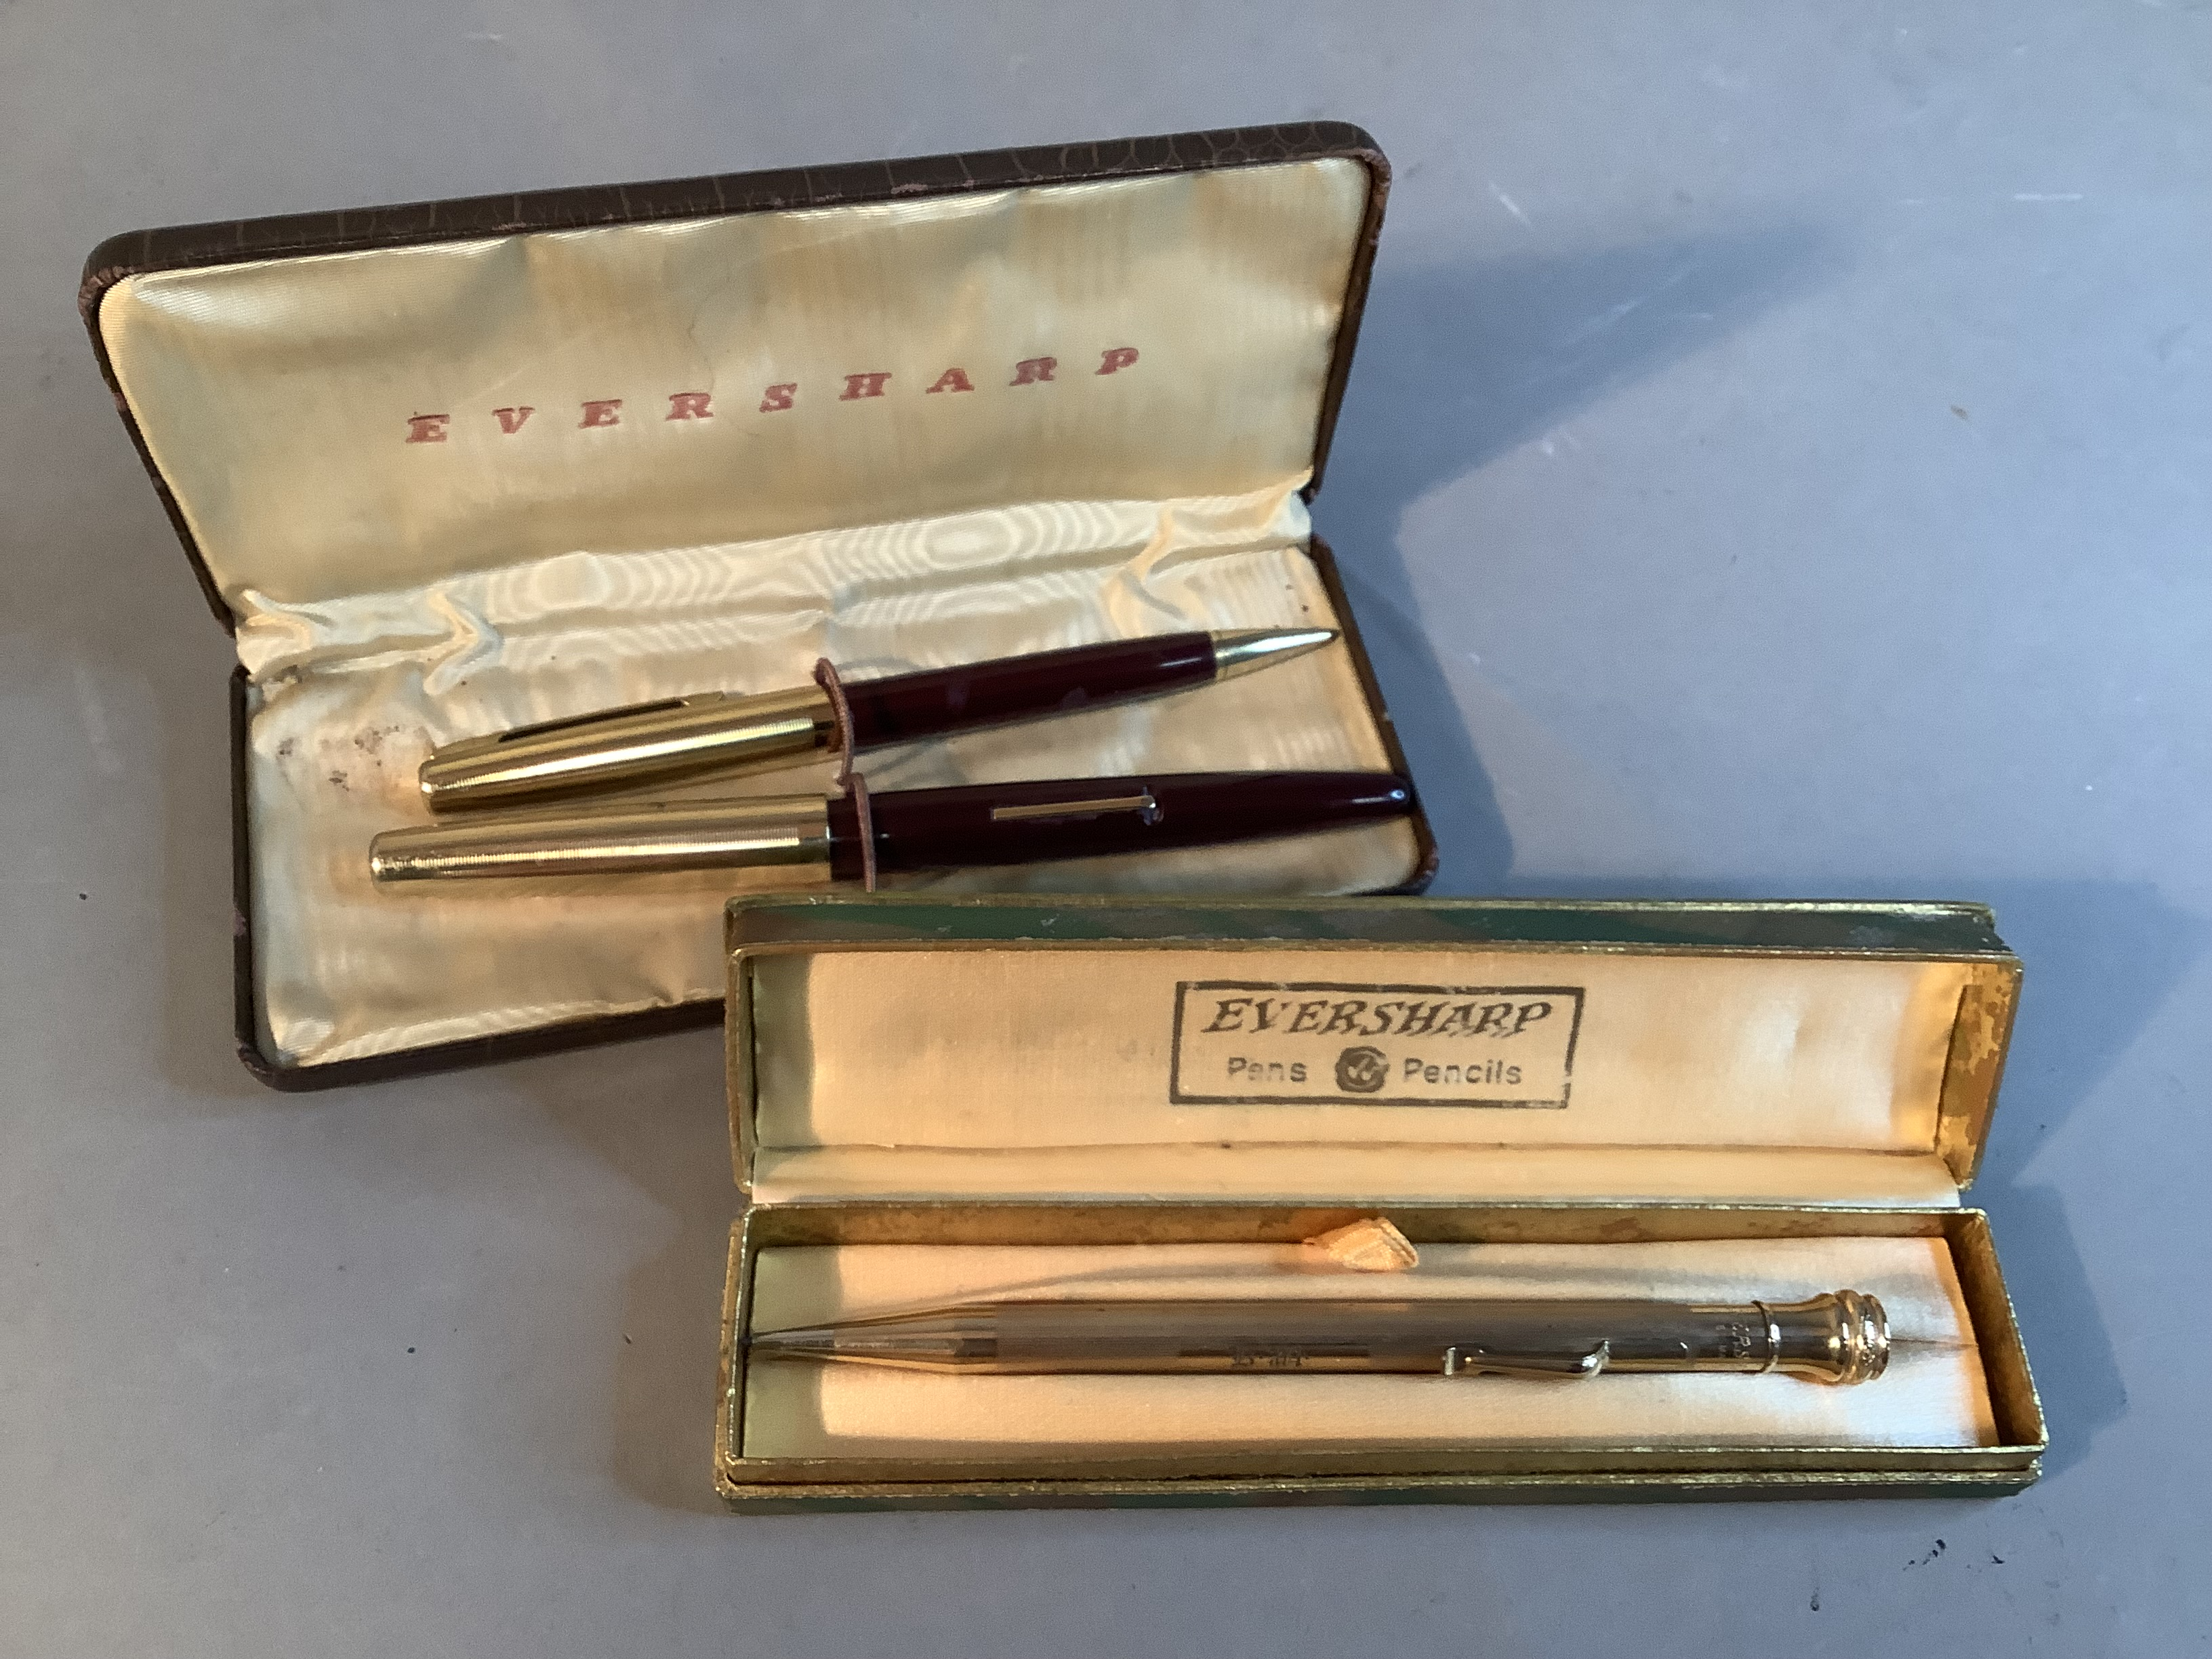 An Eversharp fountain pen and propelling pencil set, deep burgundy with gilt metal top, lever